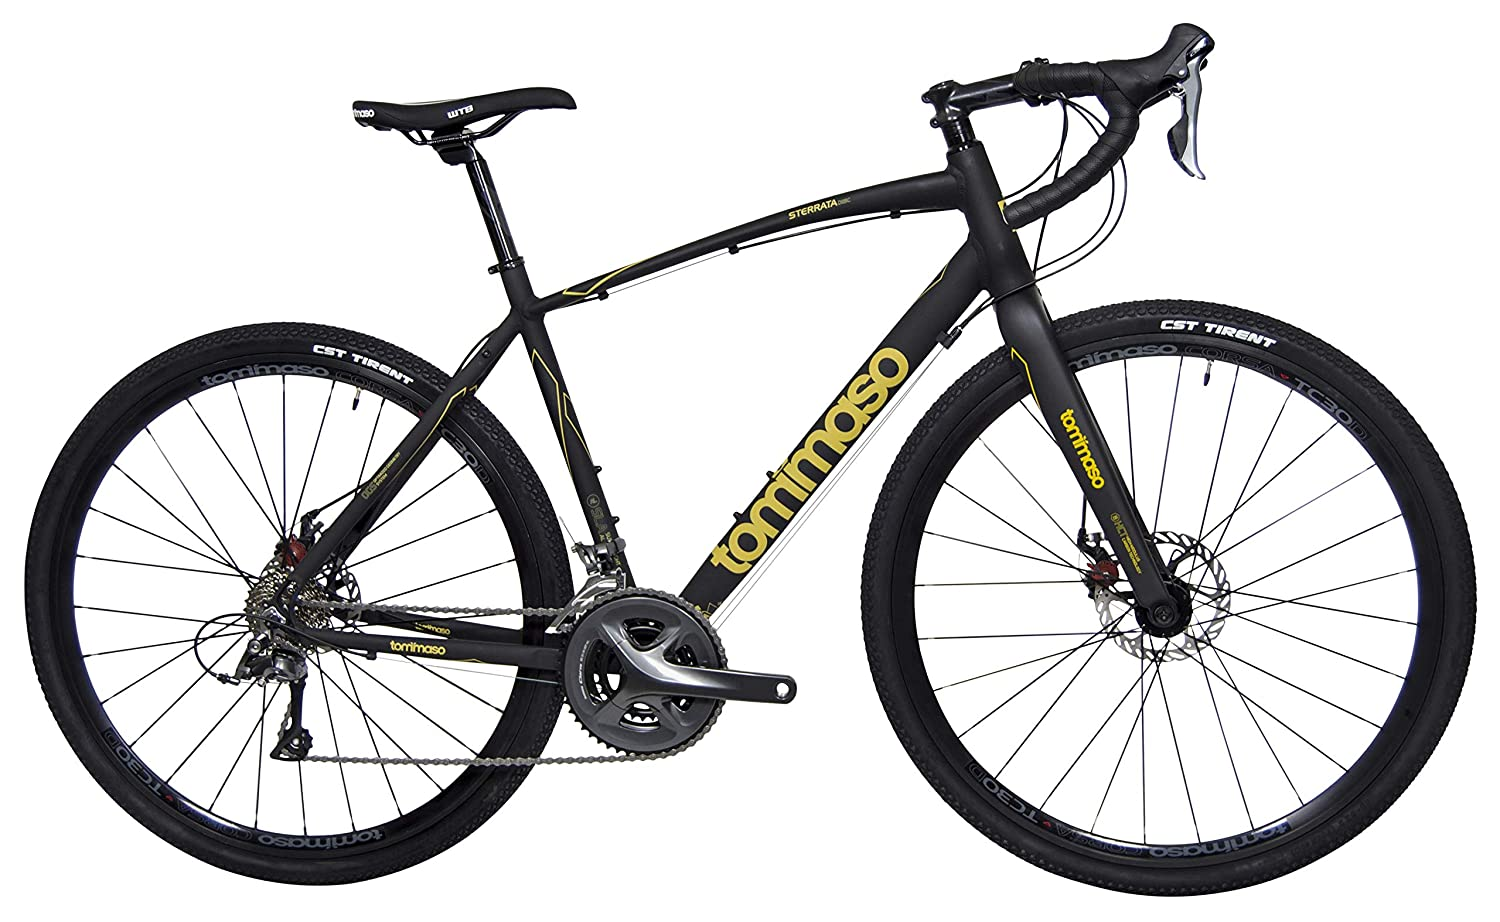 Tommaso Sterrata Shimano Claris R2000 Best Touring Bikes Under $1000